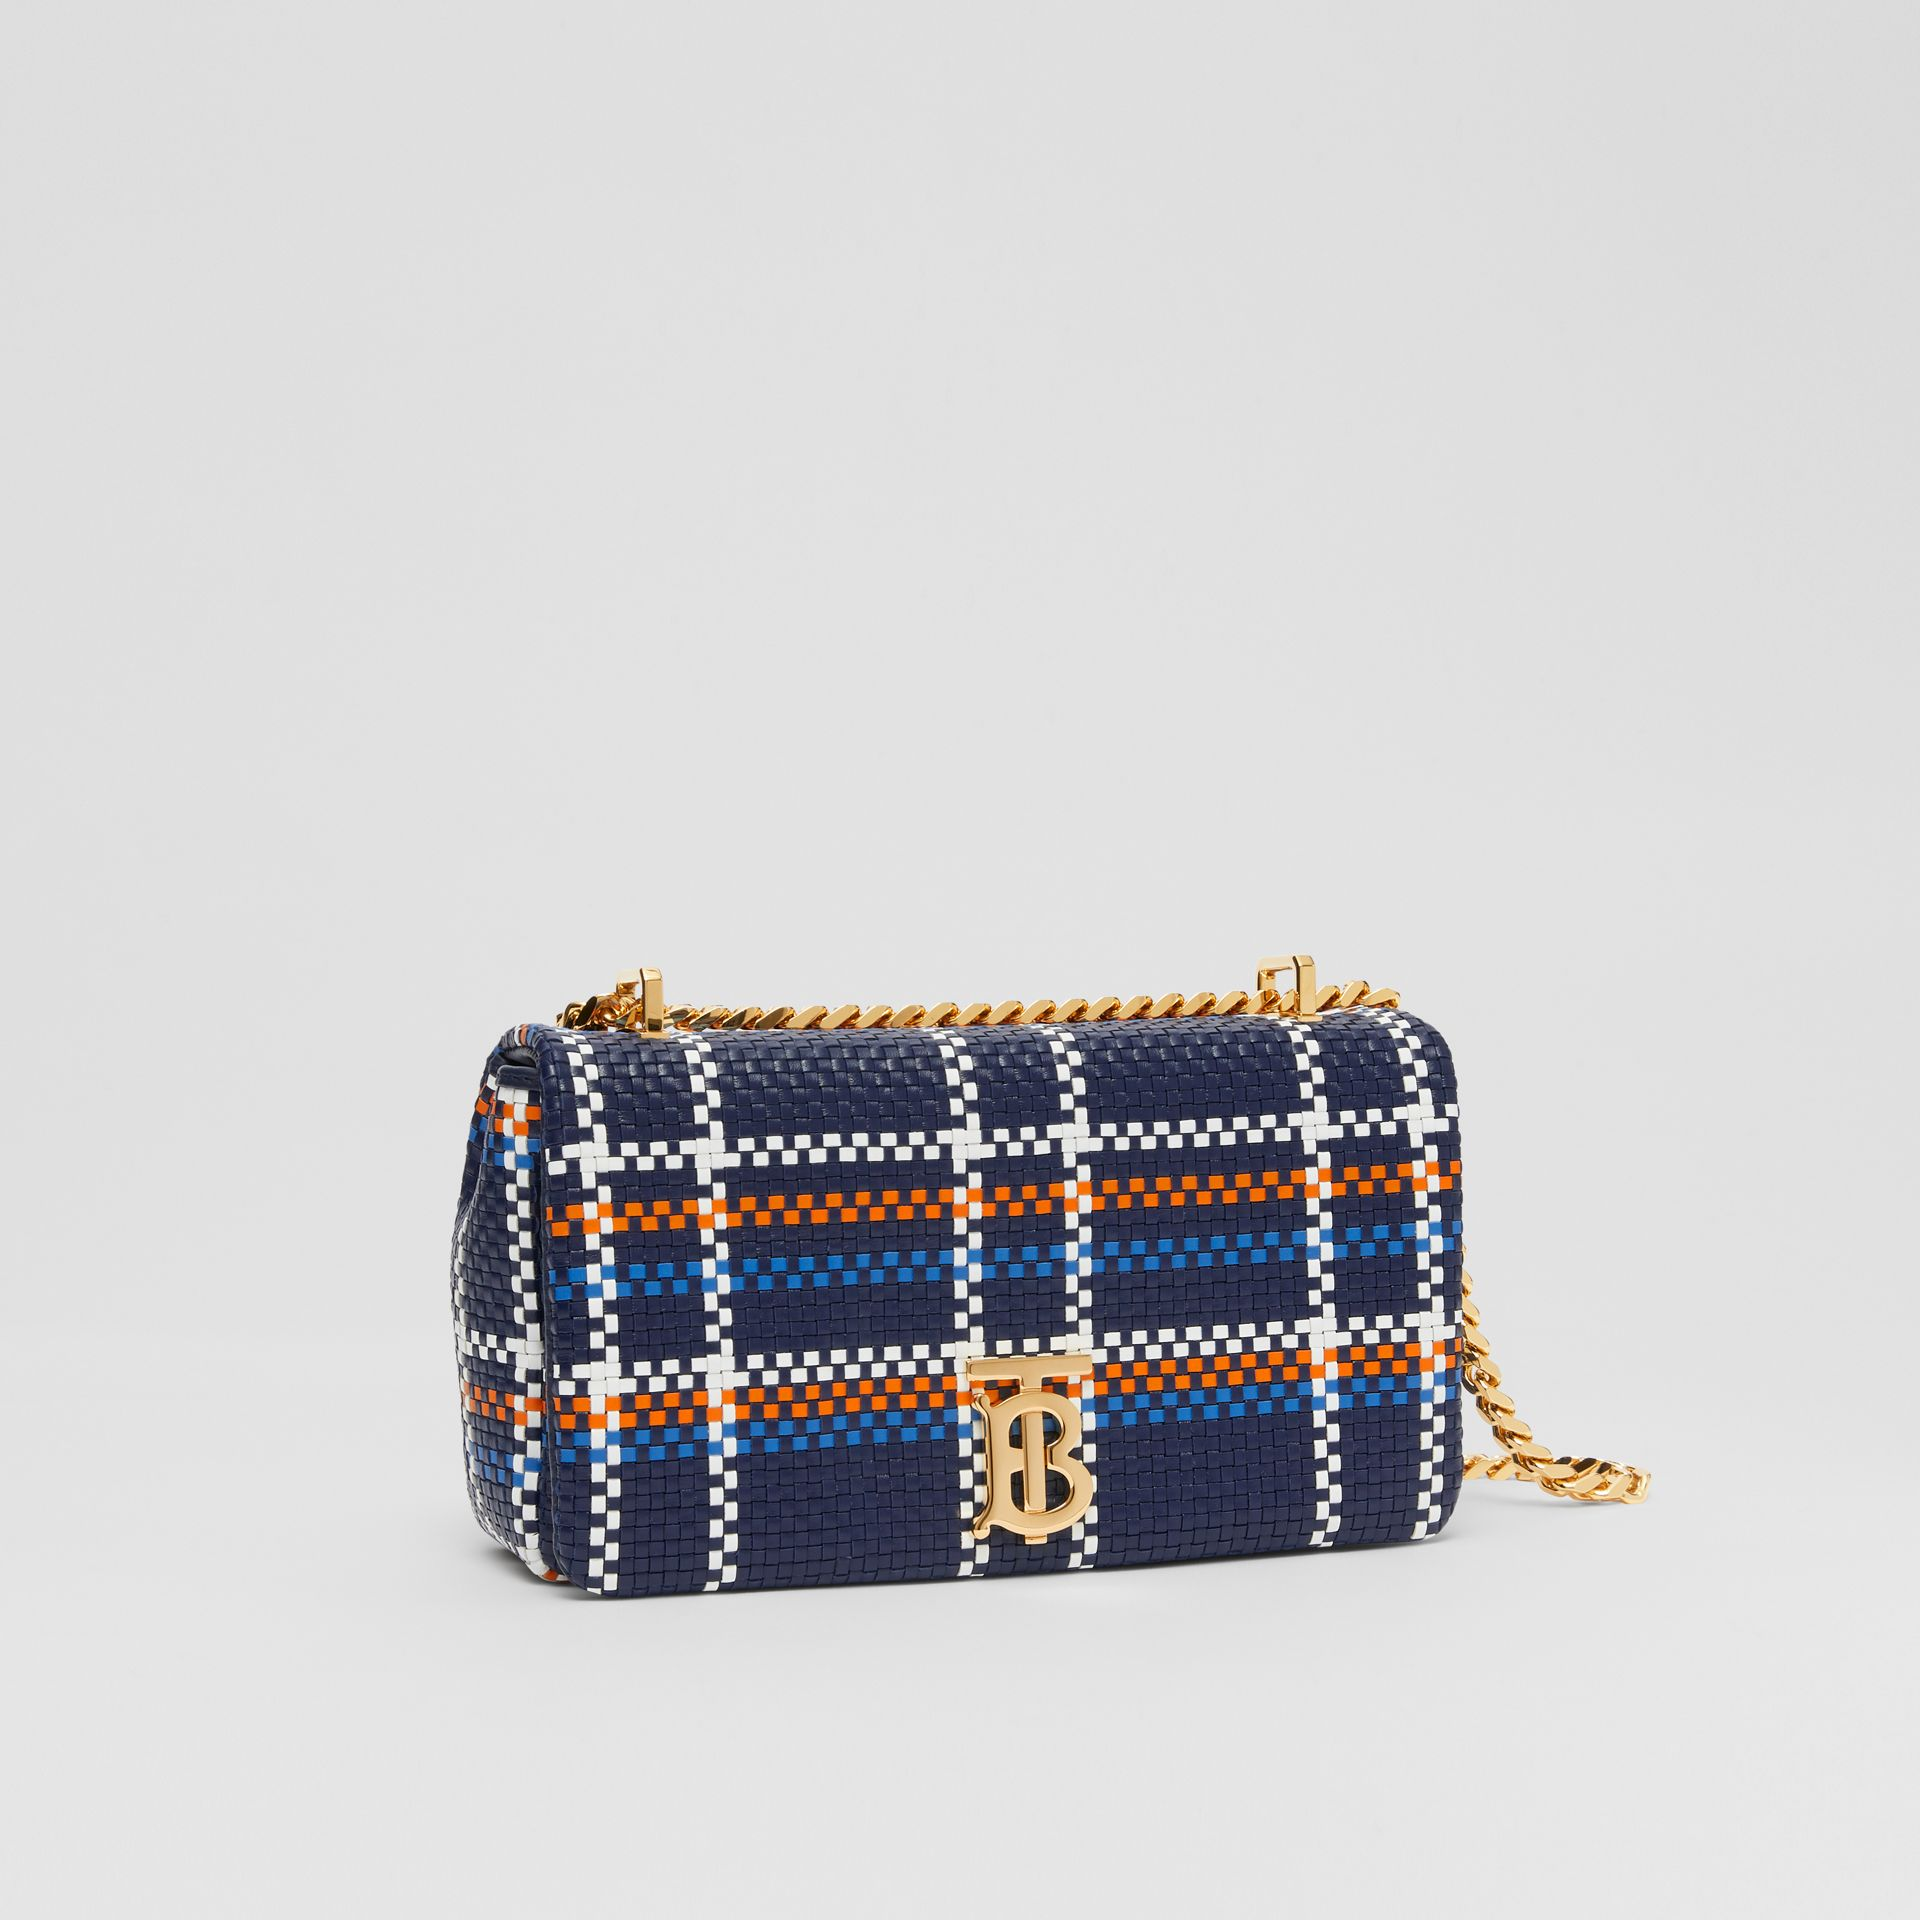 Small Latticed Leather Lola Bag in Blue/white/orange - Women | Burberry Canada - gallery image 3